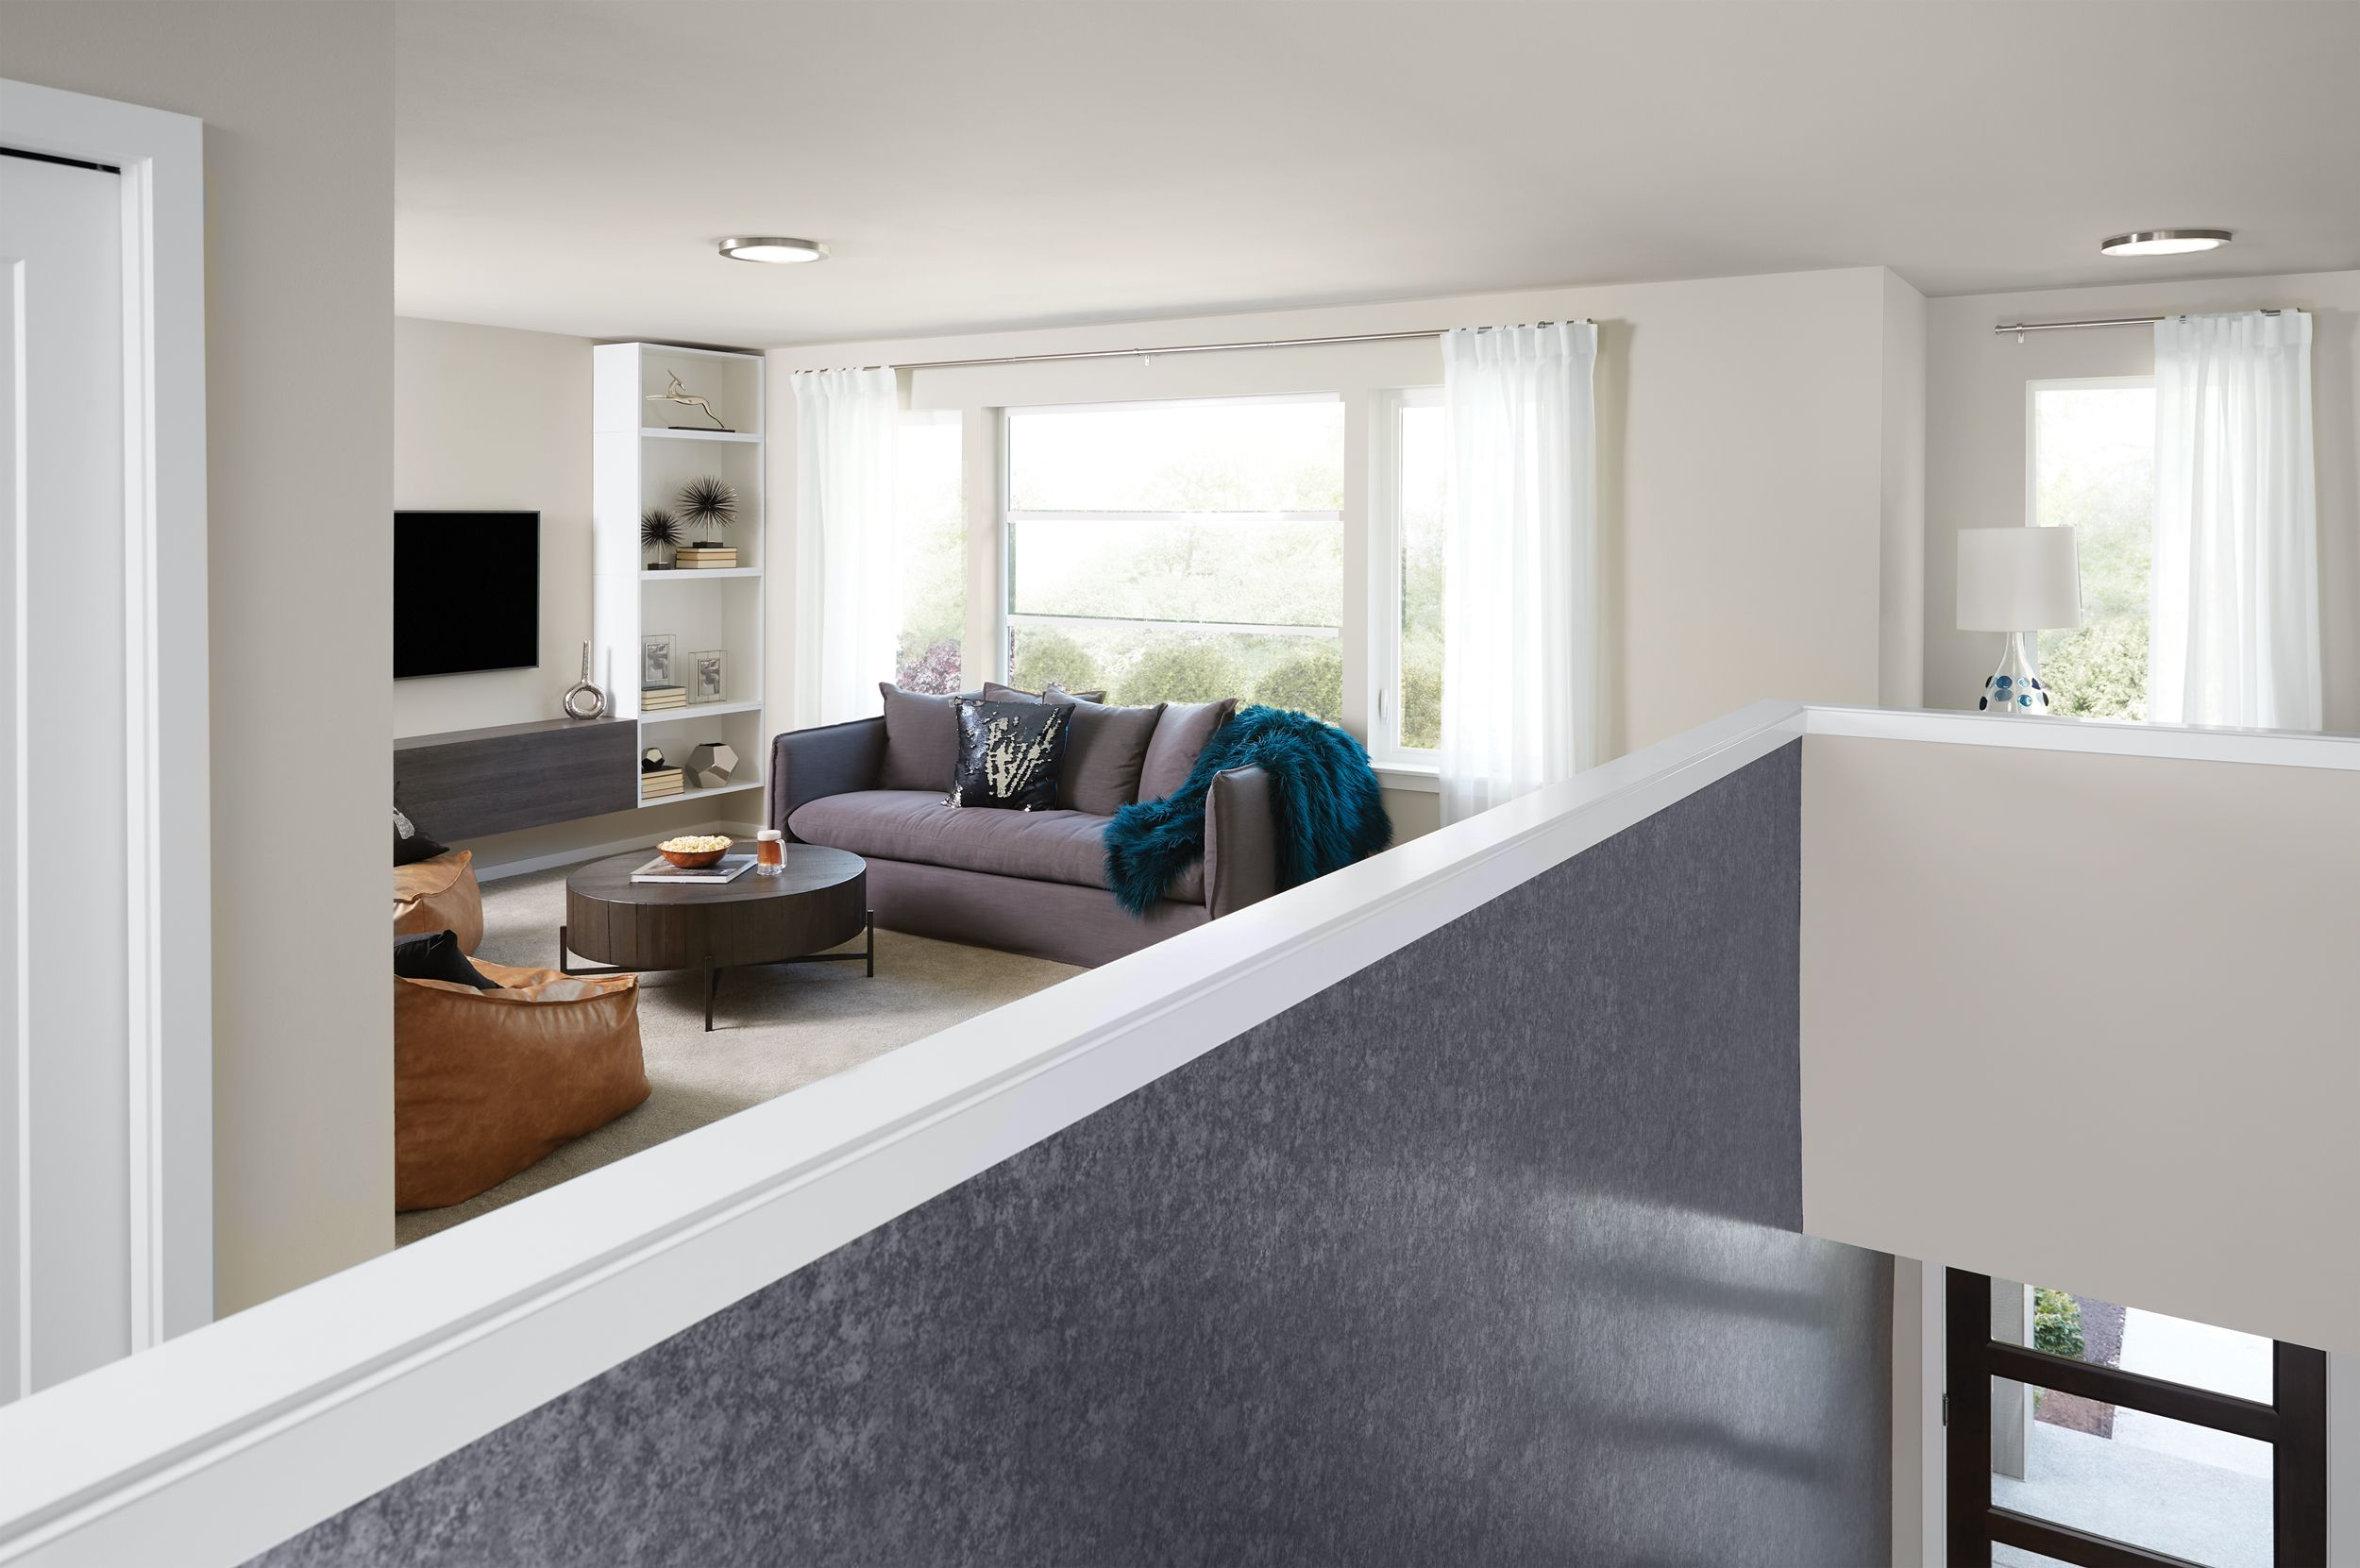 Living Area featured in the Avoca By MainVue Homes in Tacoma, WA